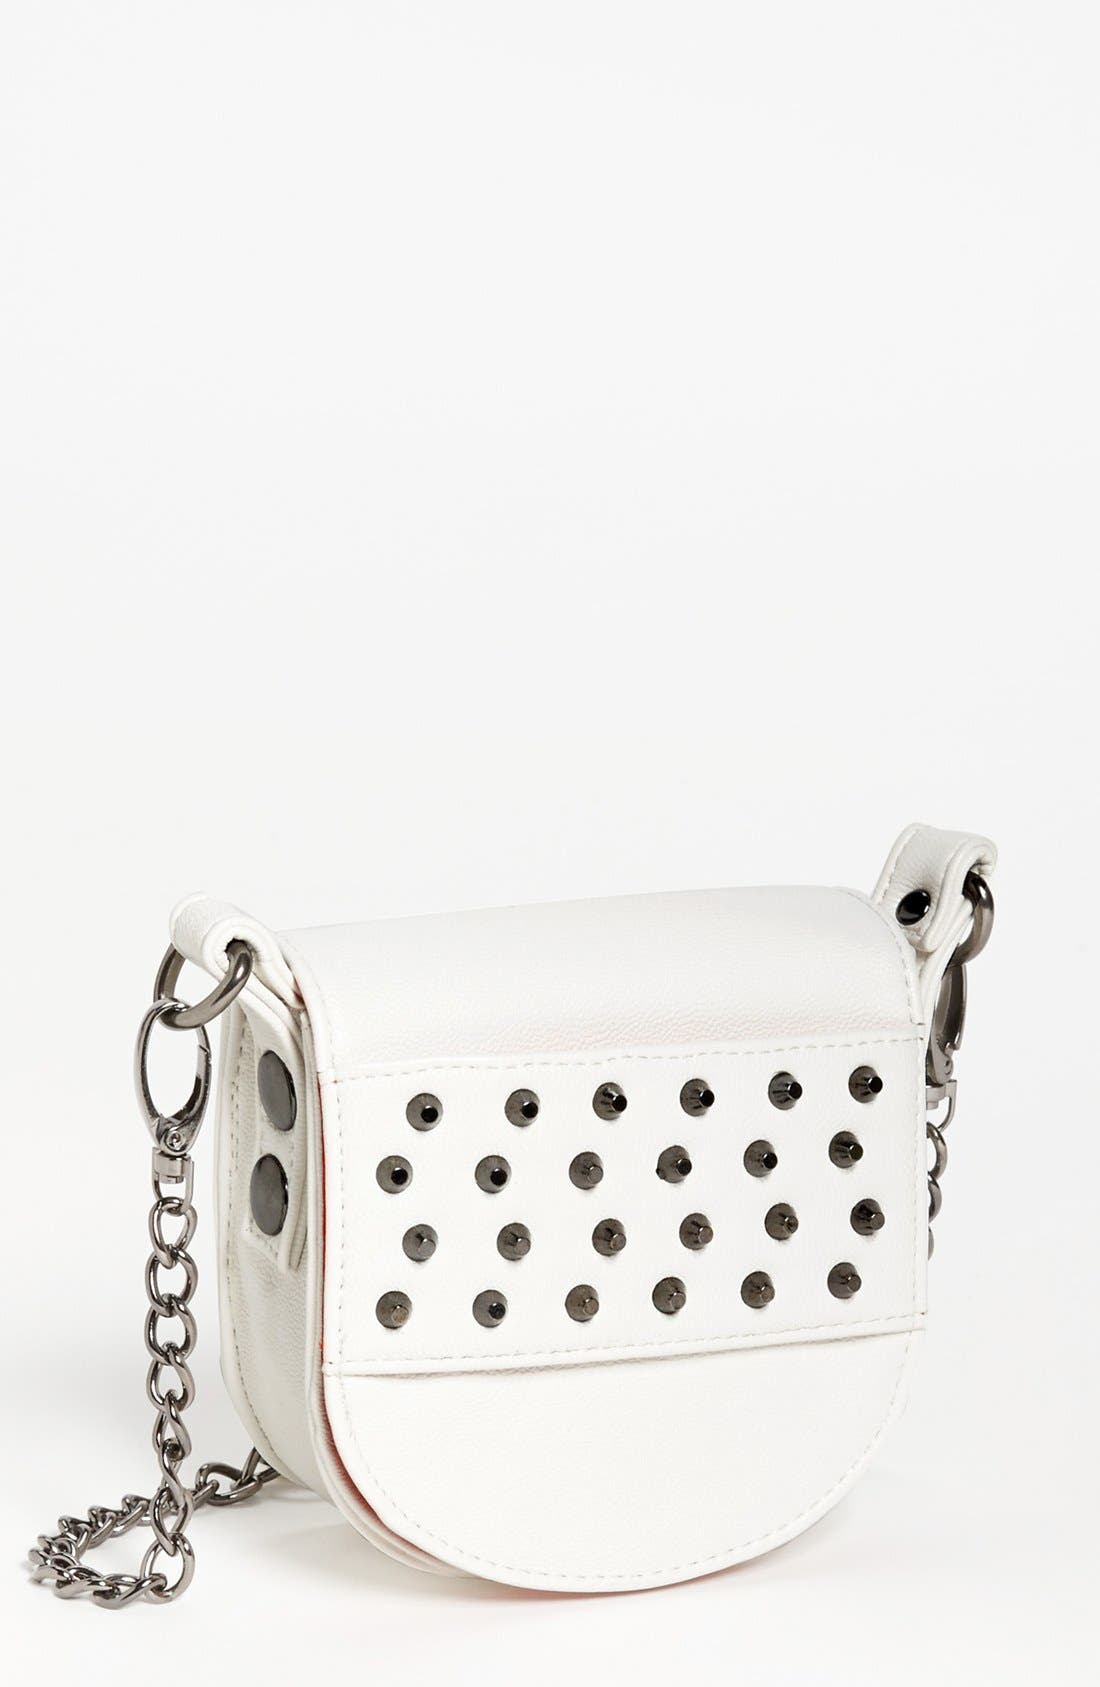 Alternate Image 1 Selected - POVERTY FLATS by rian Studded Faux Leather Mini Crossbody Bag